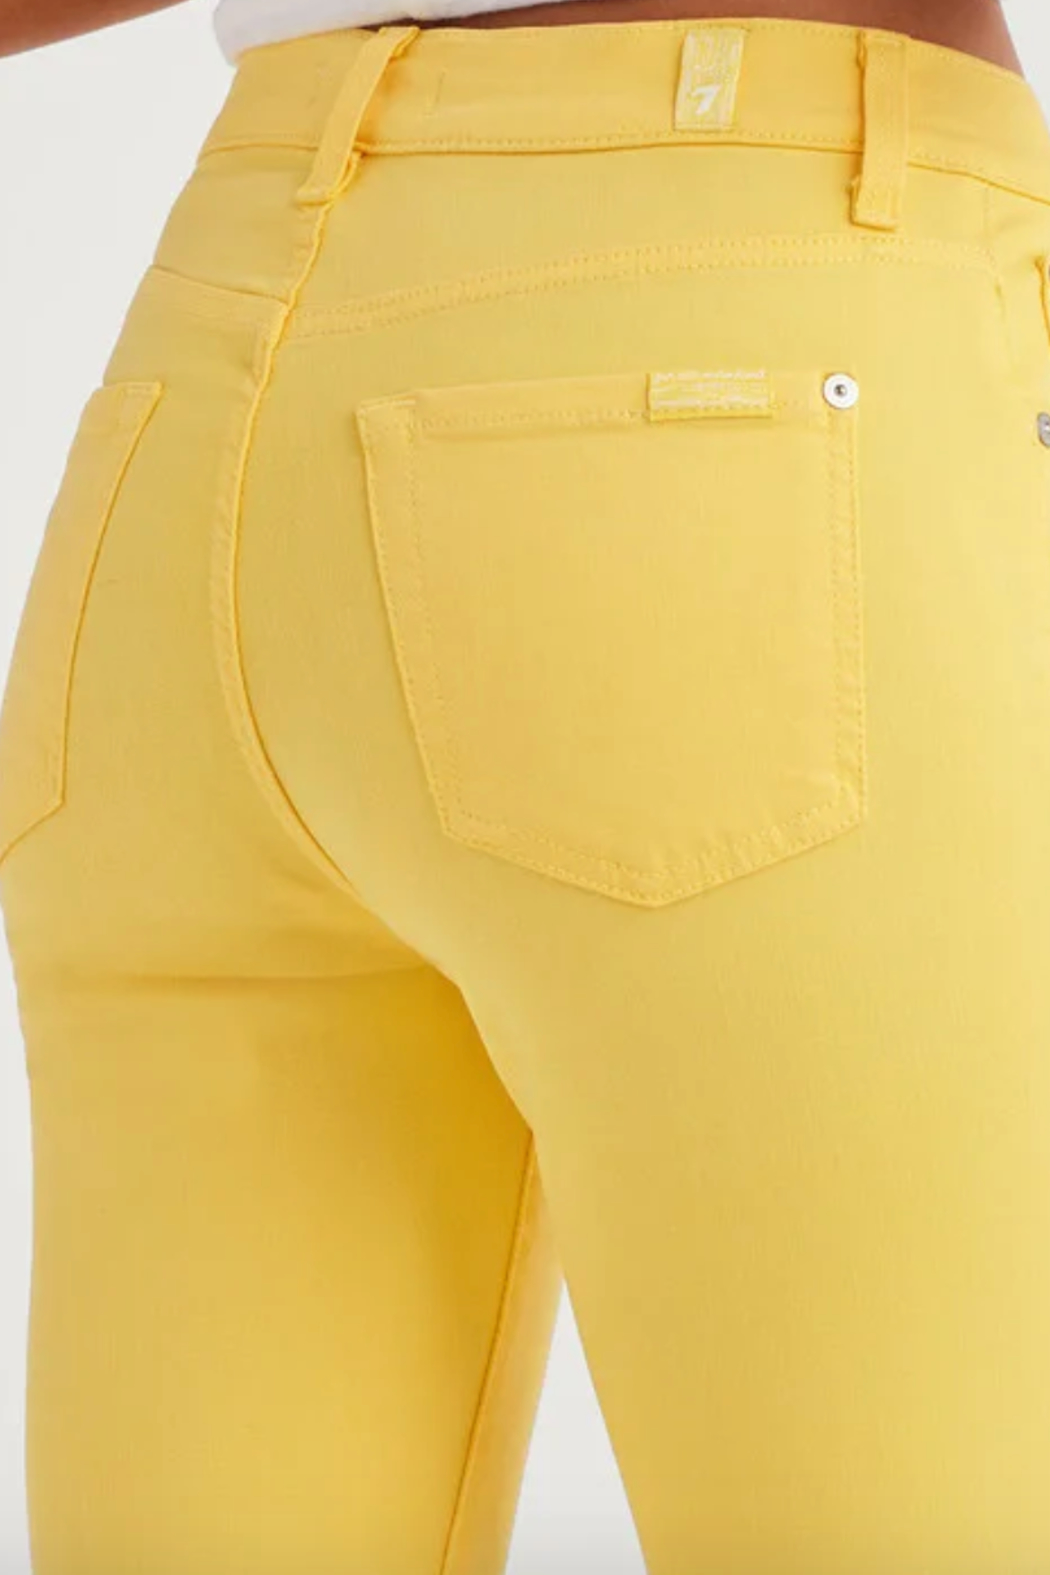 7 For all Mankind High Waist Ankle Skinny in Dandelion - Back Cropped Image